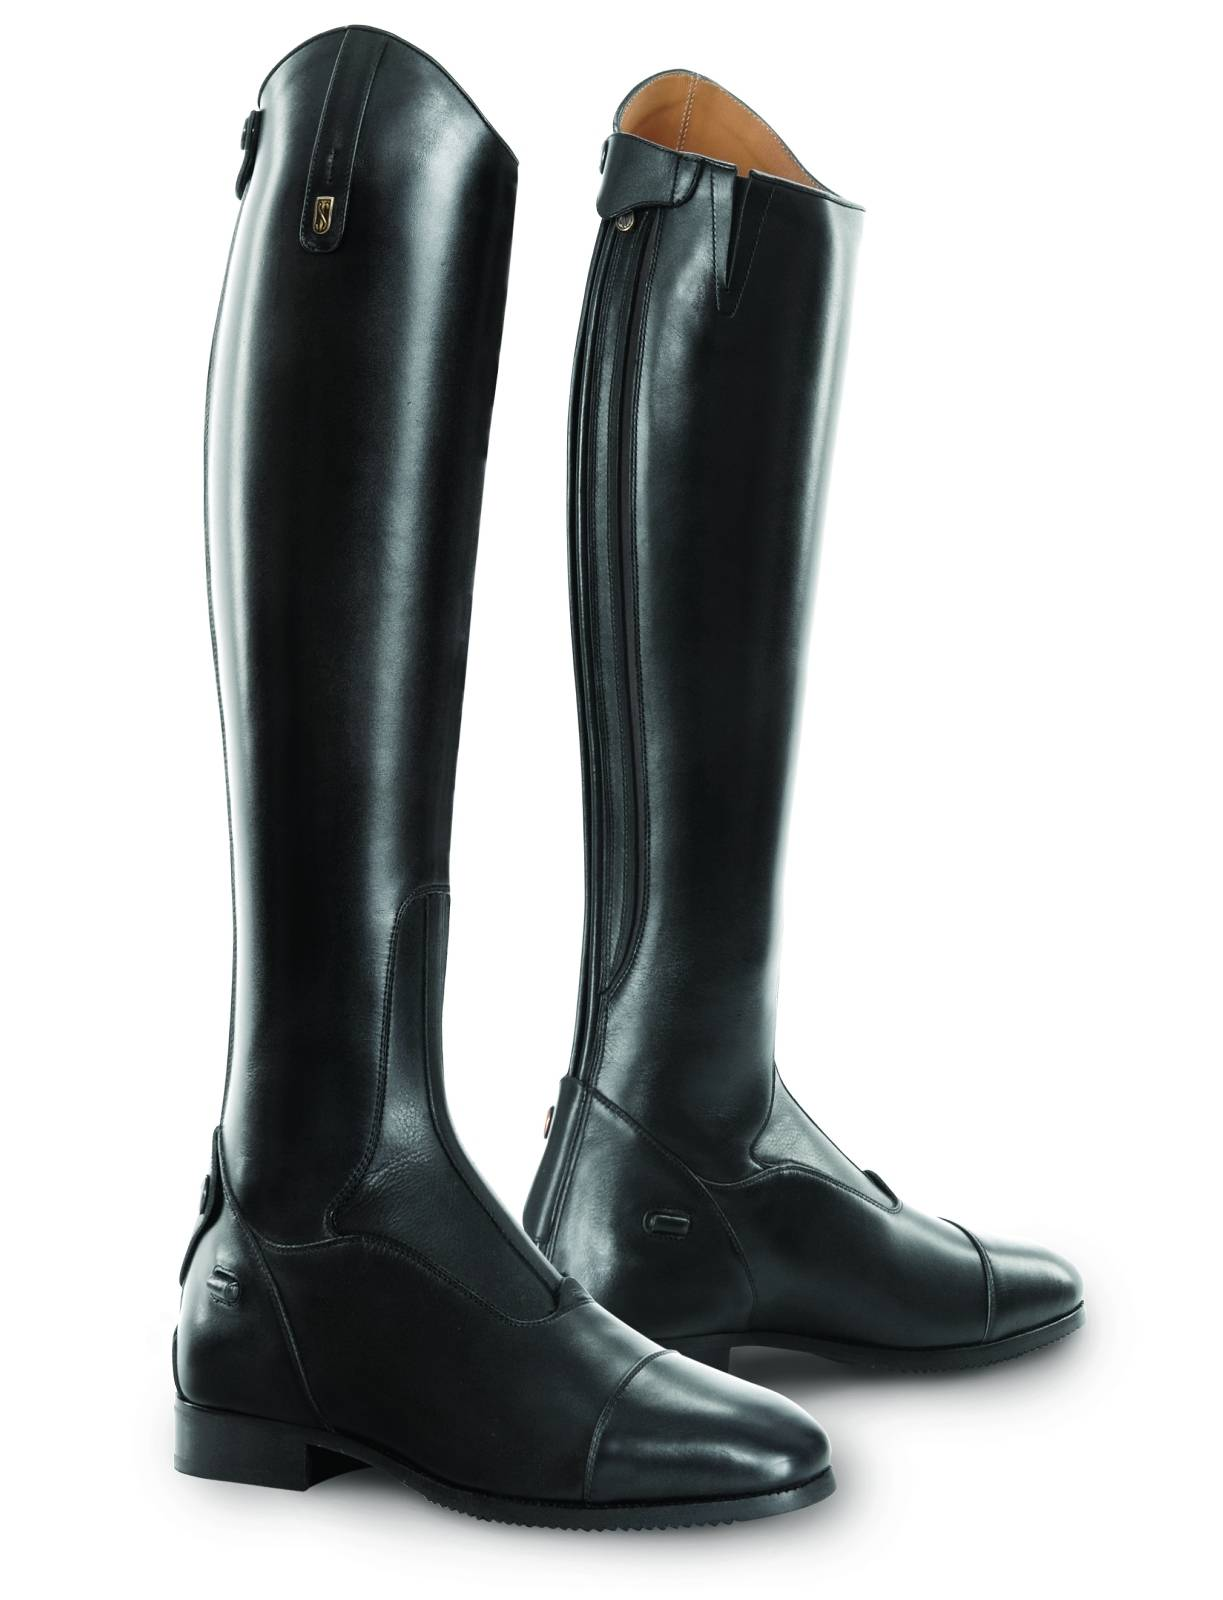 Tredstep Ireland Raphael Tall Dress Boots